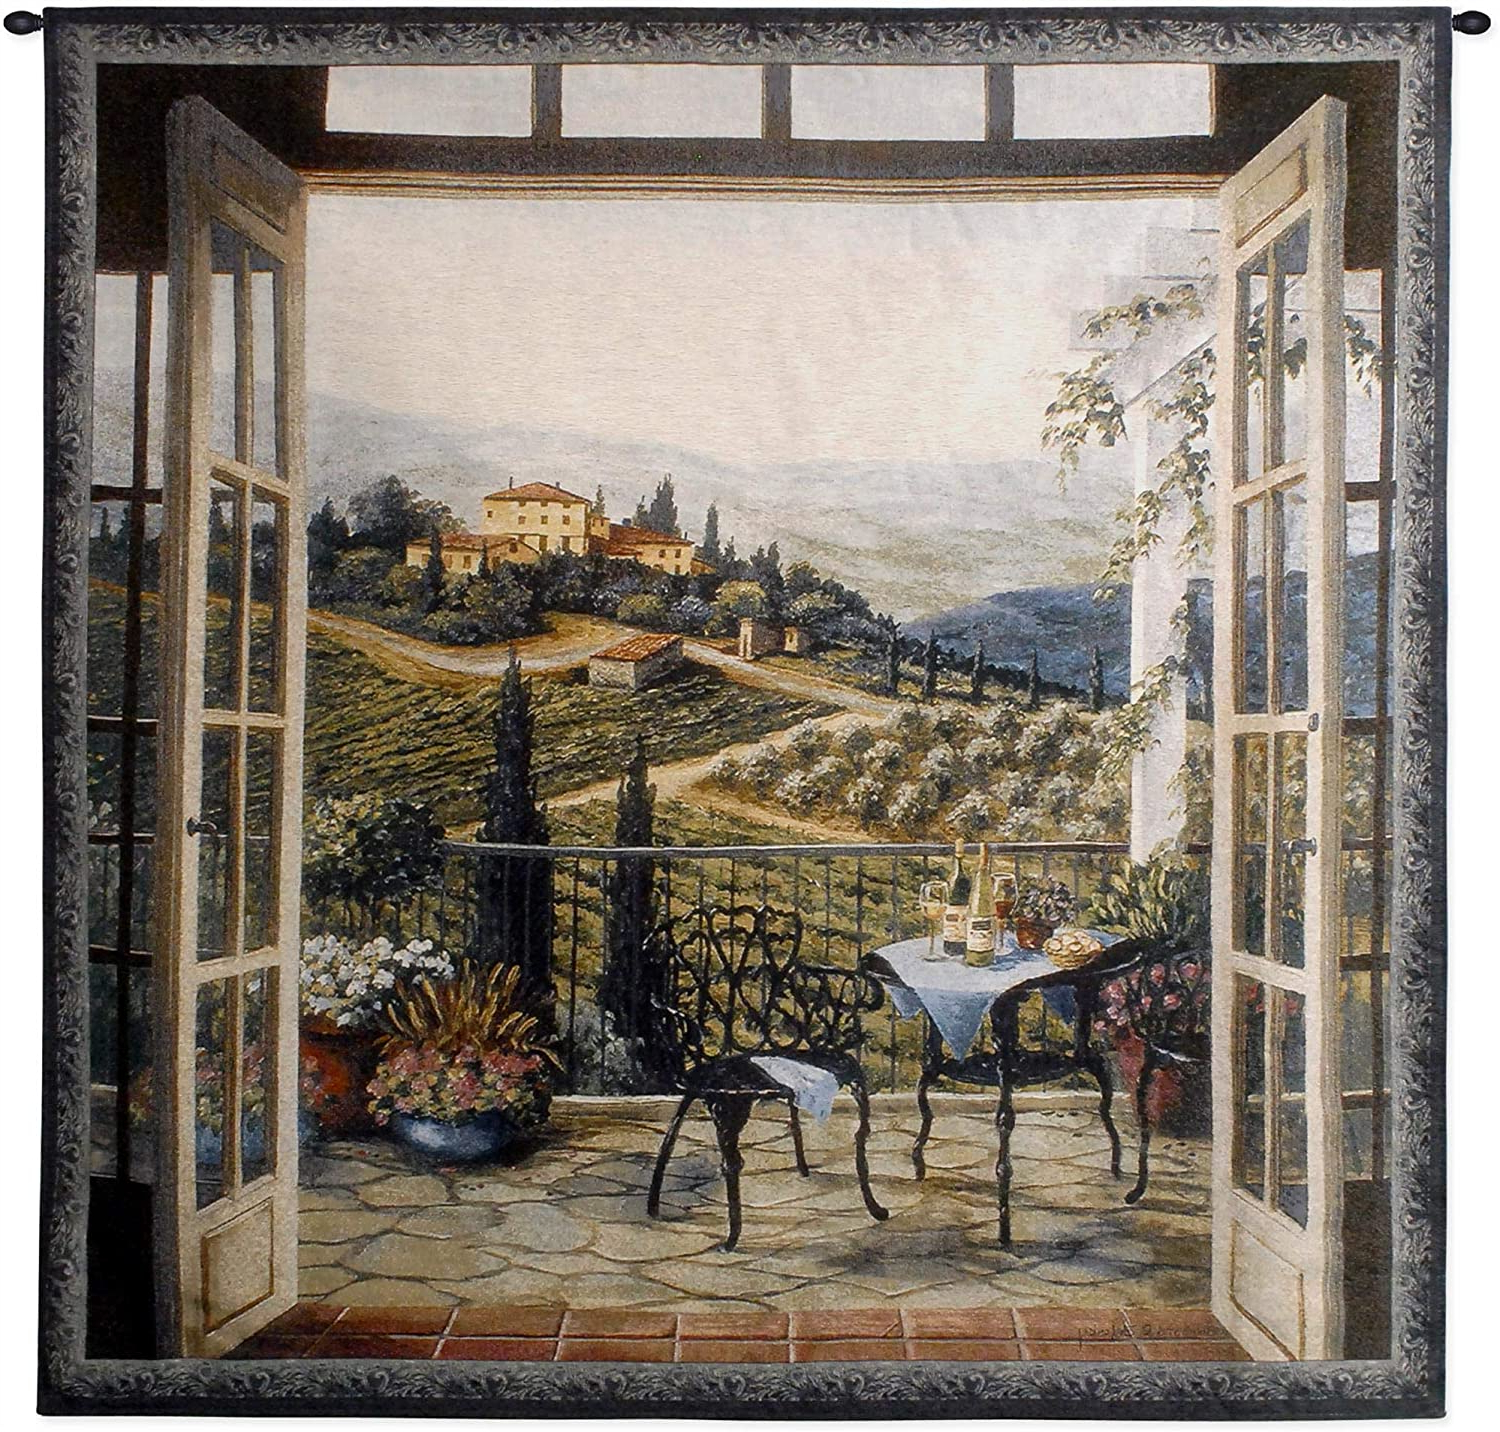 [%balcony View Of The Villabarbara Felisky | Woven Tapestry Wall Art Hanging | Peaceful Countryside Lanscape | 100% Cotton Usa Size 53x53 Regarding Widely Used Blended Fabric Italian Wall Hangings|blended Fabric Italian Wall Hangings Regarding 2019 Balcony View Of The Villabarbara Felisky | Woven Tapestry Wall Art Hanging | Peaceful Countryside Lanscape | 100% Cotton Usa Size 53x53|most Popular Blended Fabric Italian Wall Hangings Throughout Balcony View Of The Villabarbara Felisky | Woven Tapestry Wall Art Hanging | Peaceful Countryside Lanscape | 100% Cotton Usa Size 53x53|newest Balcony View Of The Villabarbara Felisky | Woven Tapestry Wall Art Hanging | Peaceful Countryside Lanscape | 100% Cotton Usa Size 53x53 With Blended Fabric Italian Wall Hangings%] (View 3 of 20)